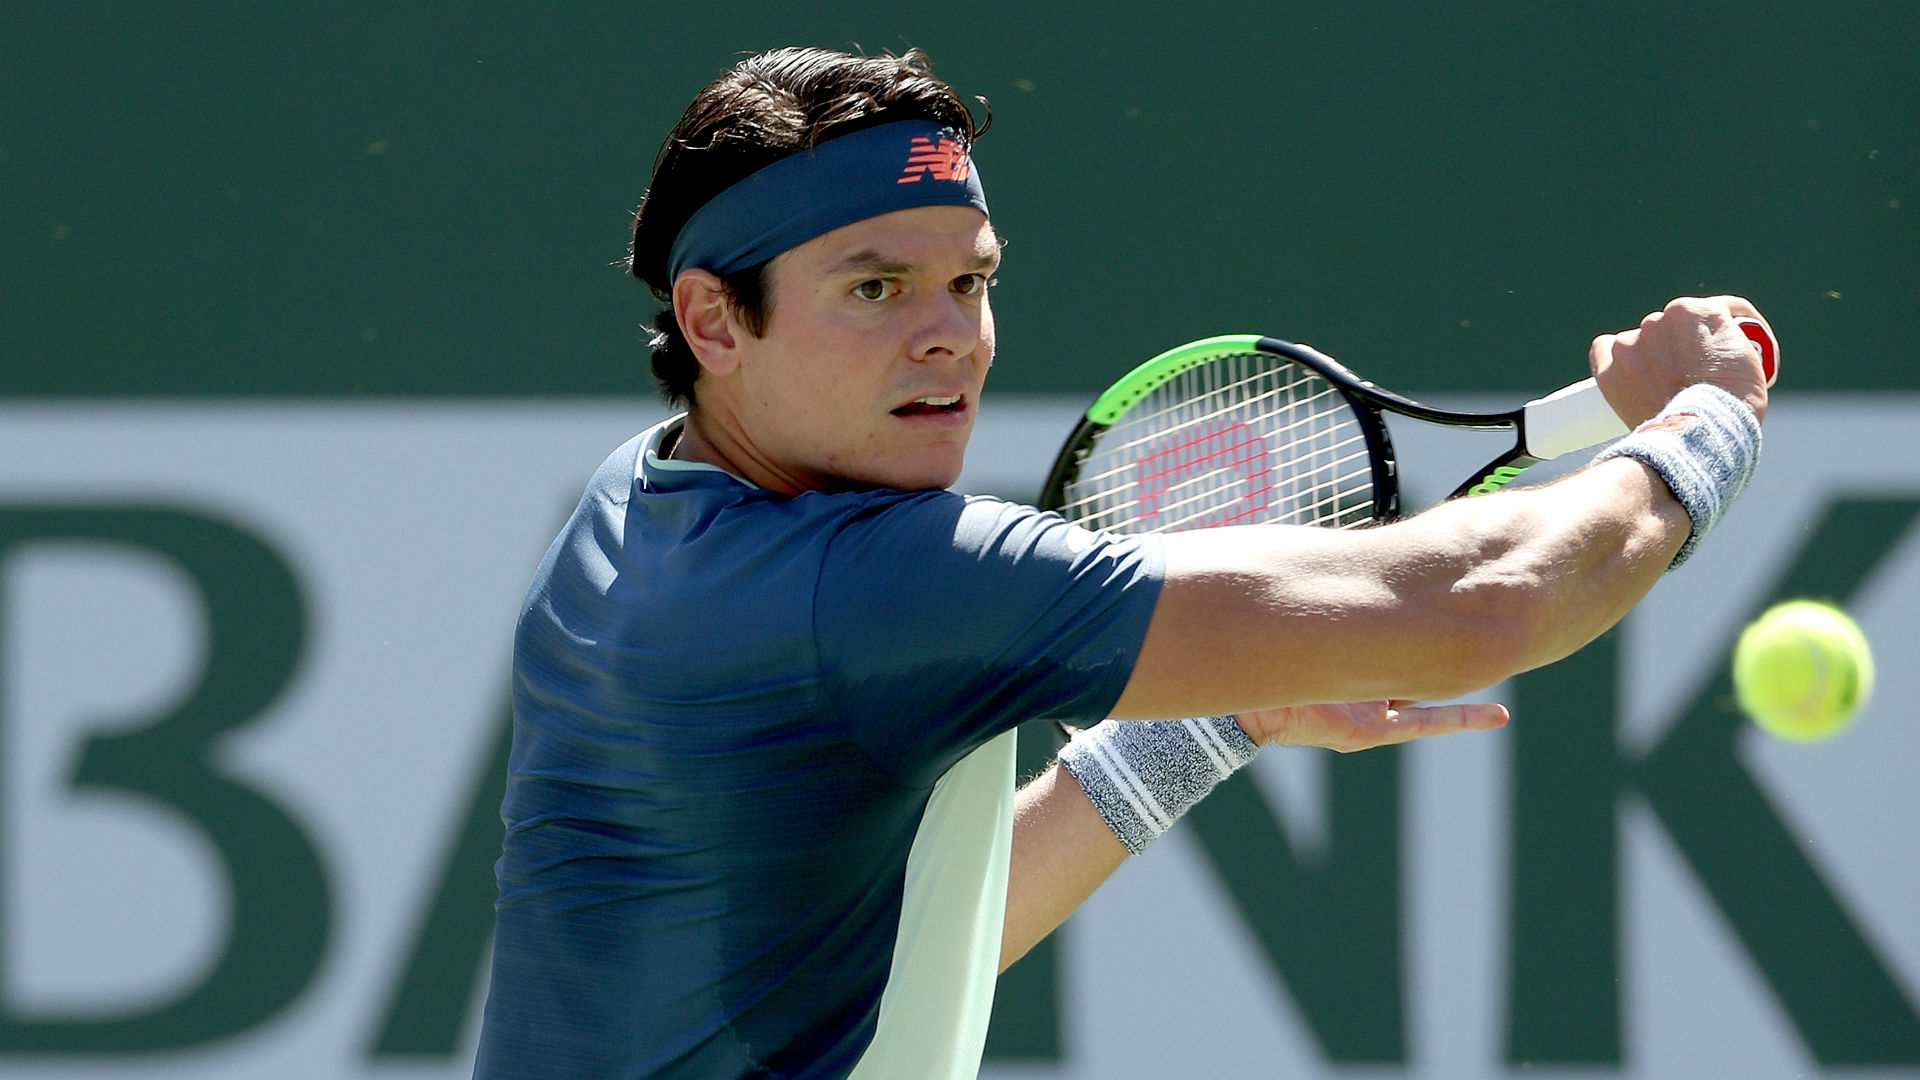 Runner-up at the 2018 Stuttgart Open, Milos Raonic continued his comeback from injury by beating Jo-Wilfried Tsonga in Germany on Wednesday.